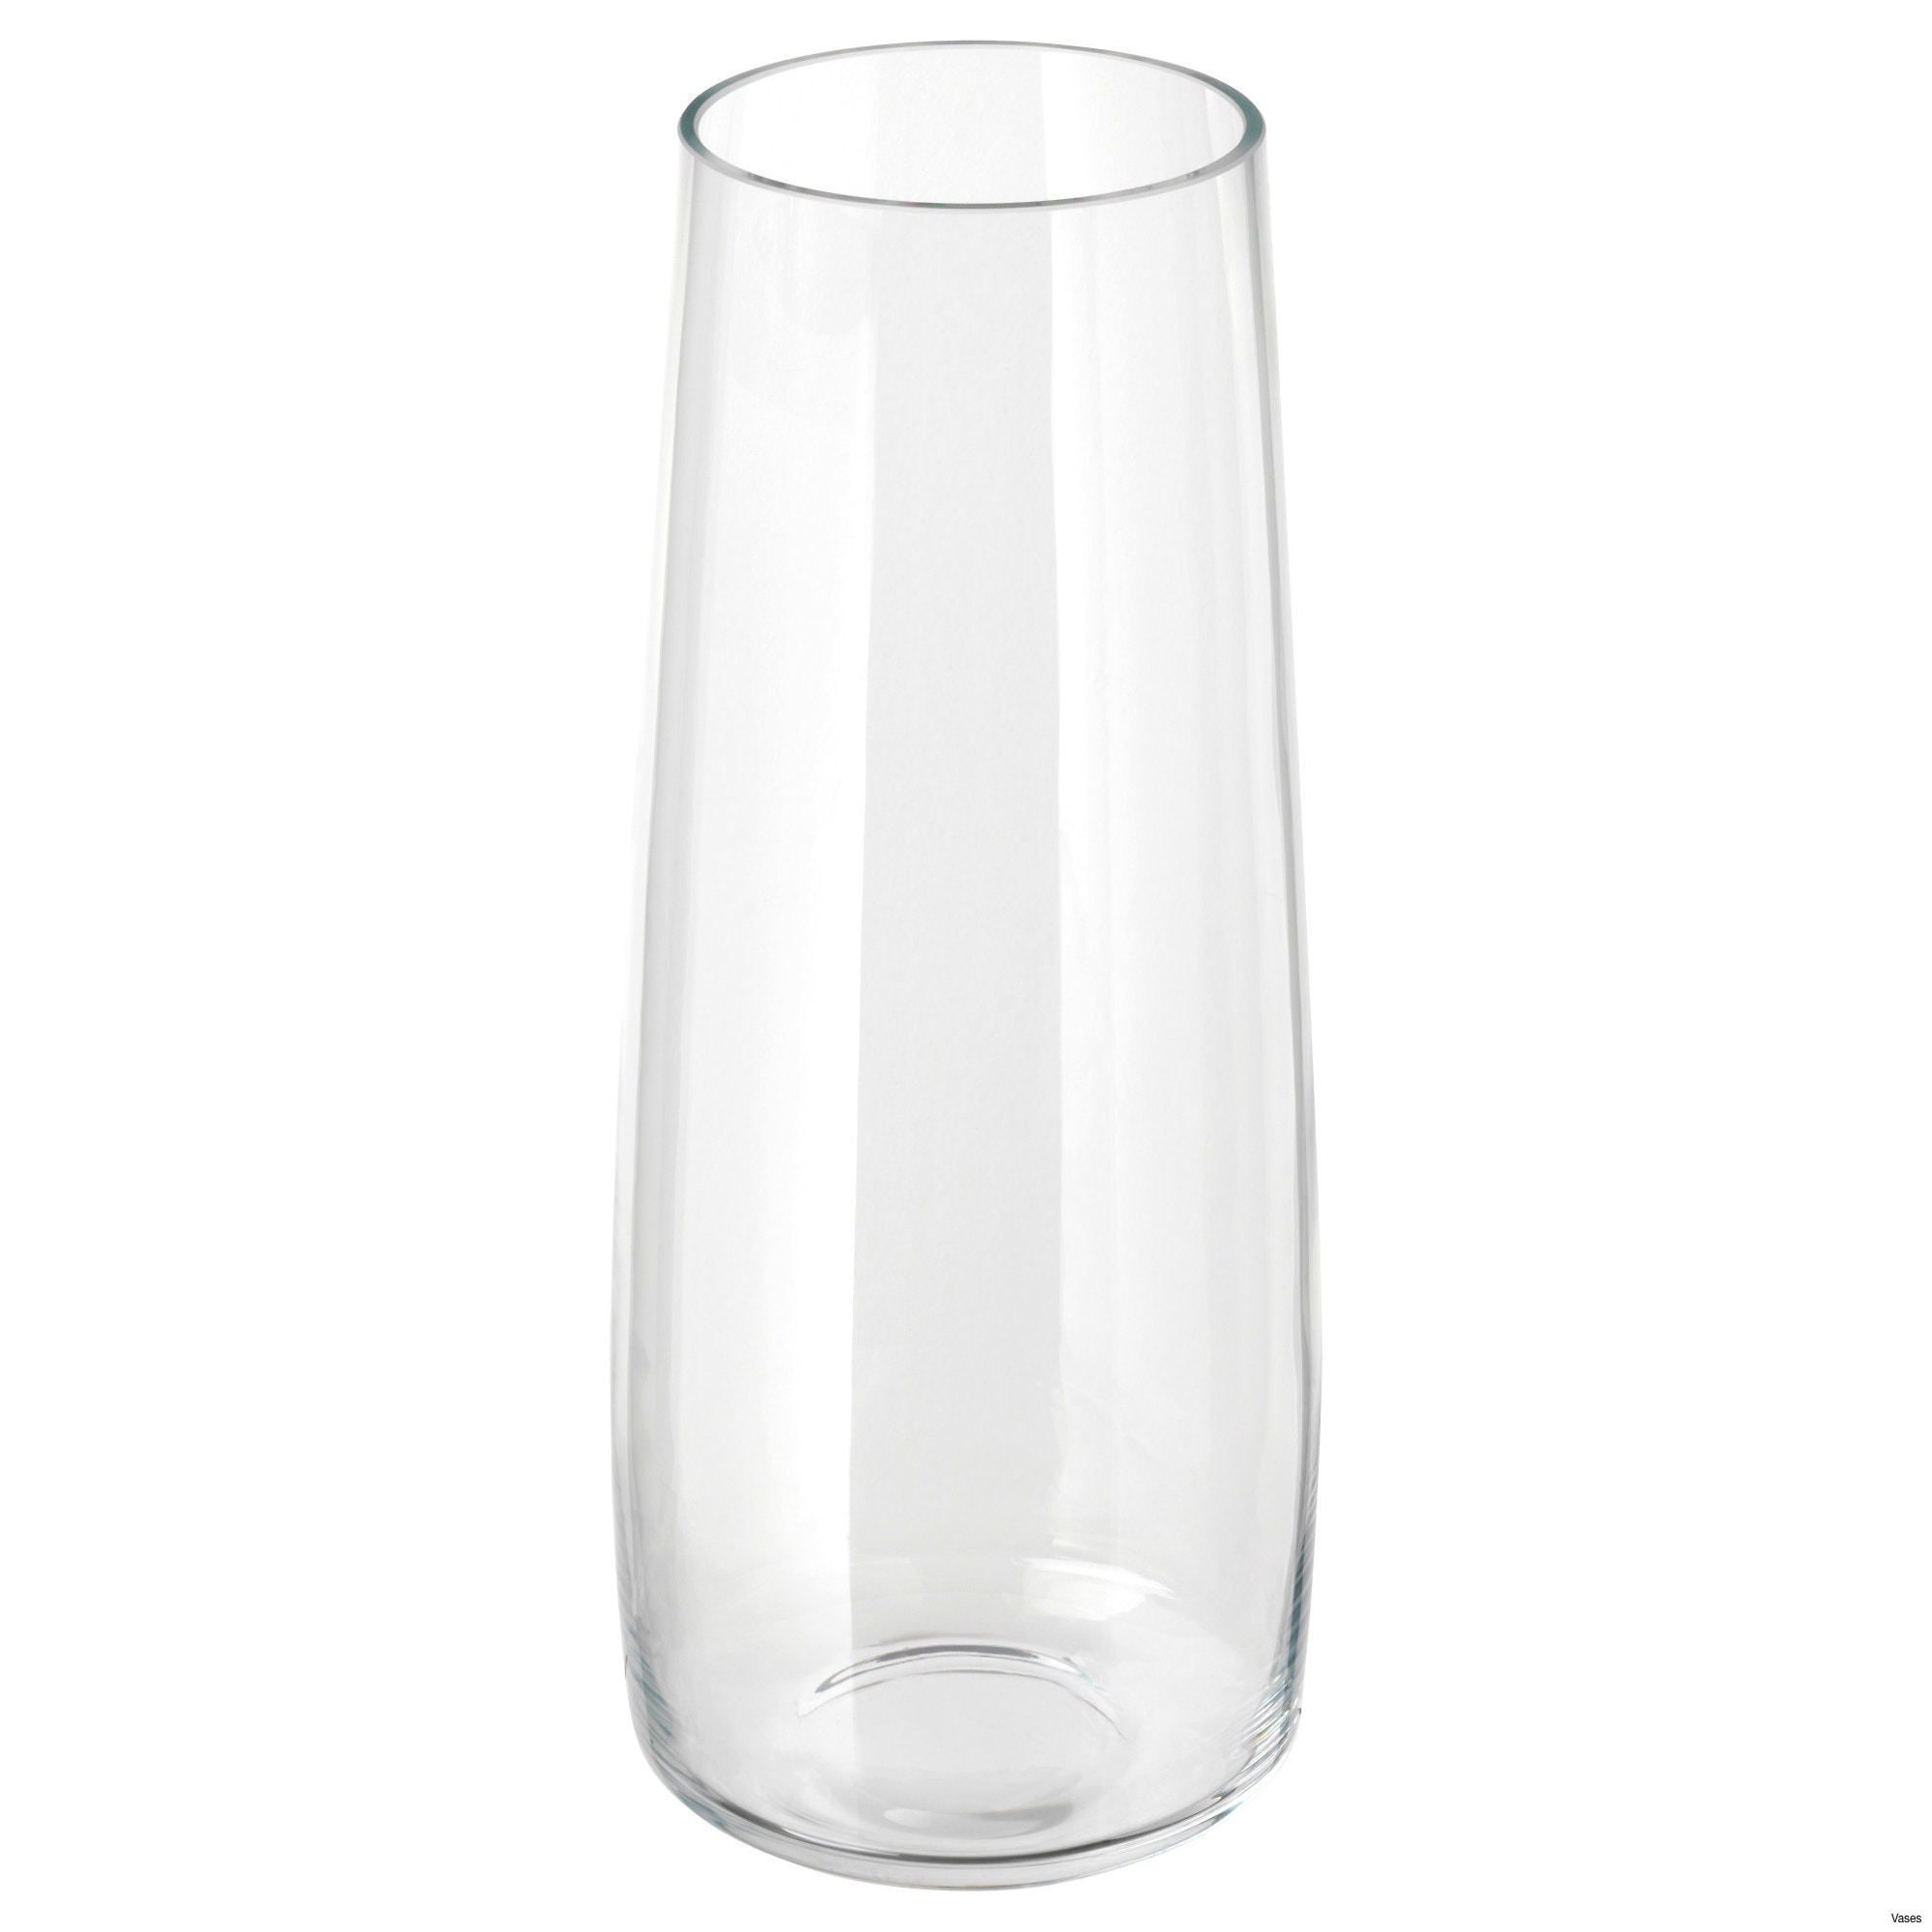 round vases wholesale of glass globe vase photos vases bubble ball discount 15 vase round throughout glass globe vase image clear glass planters fresh clear glass vases of glass globe vase photos